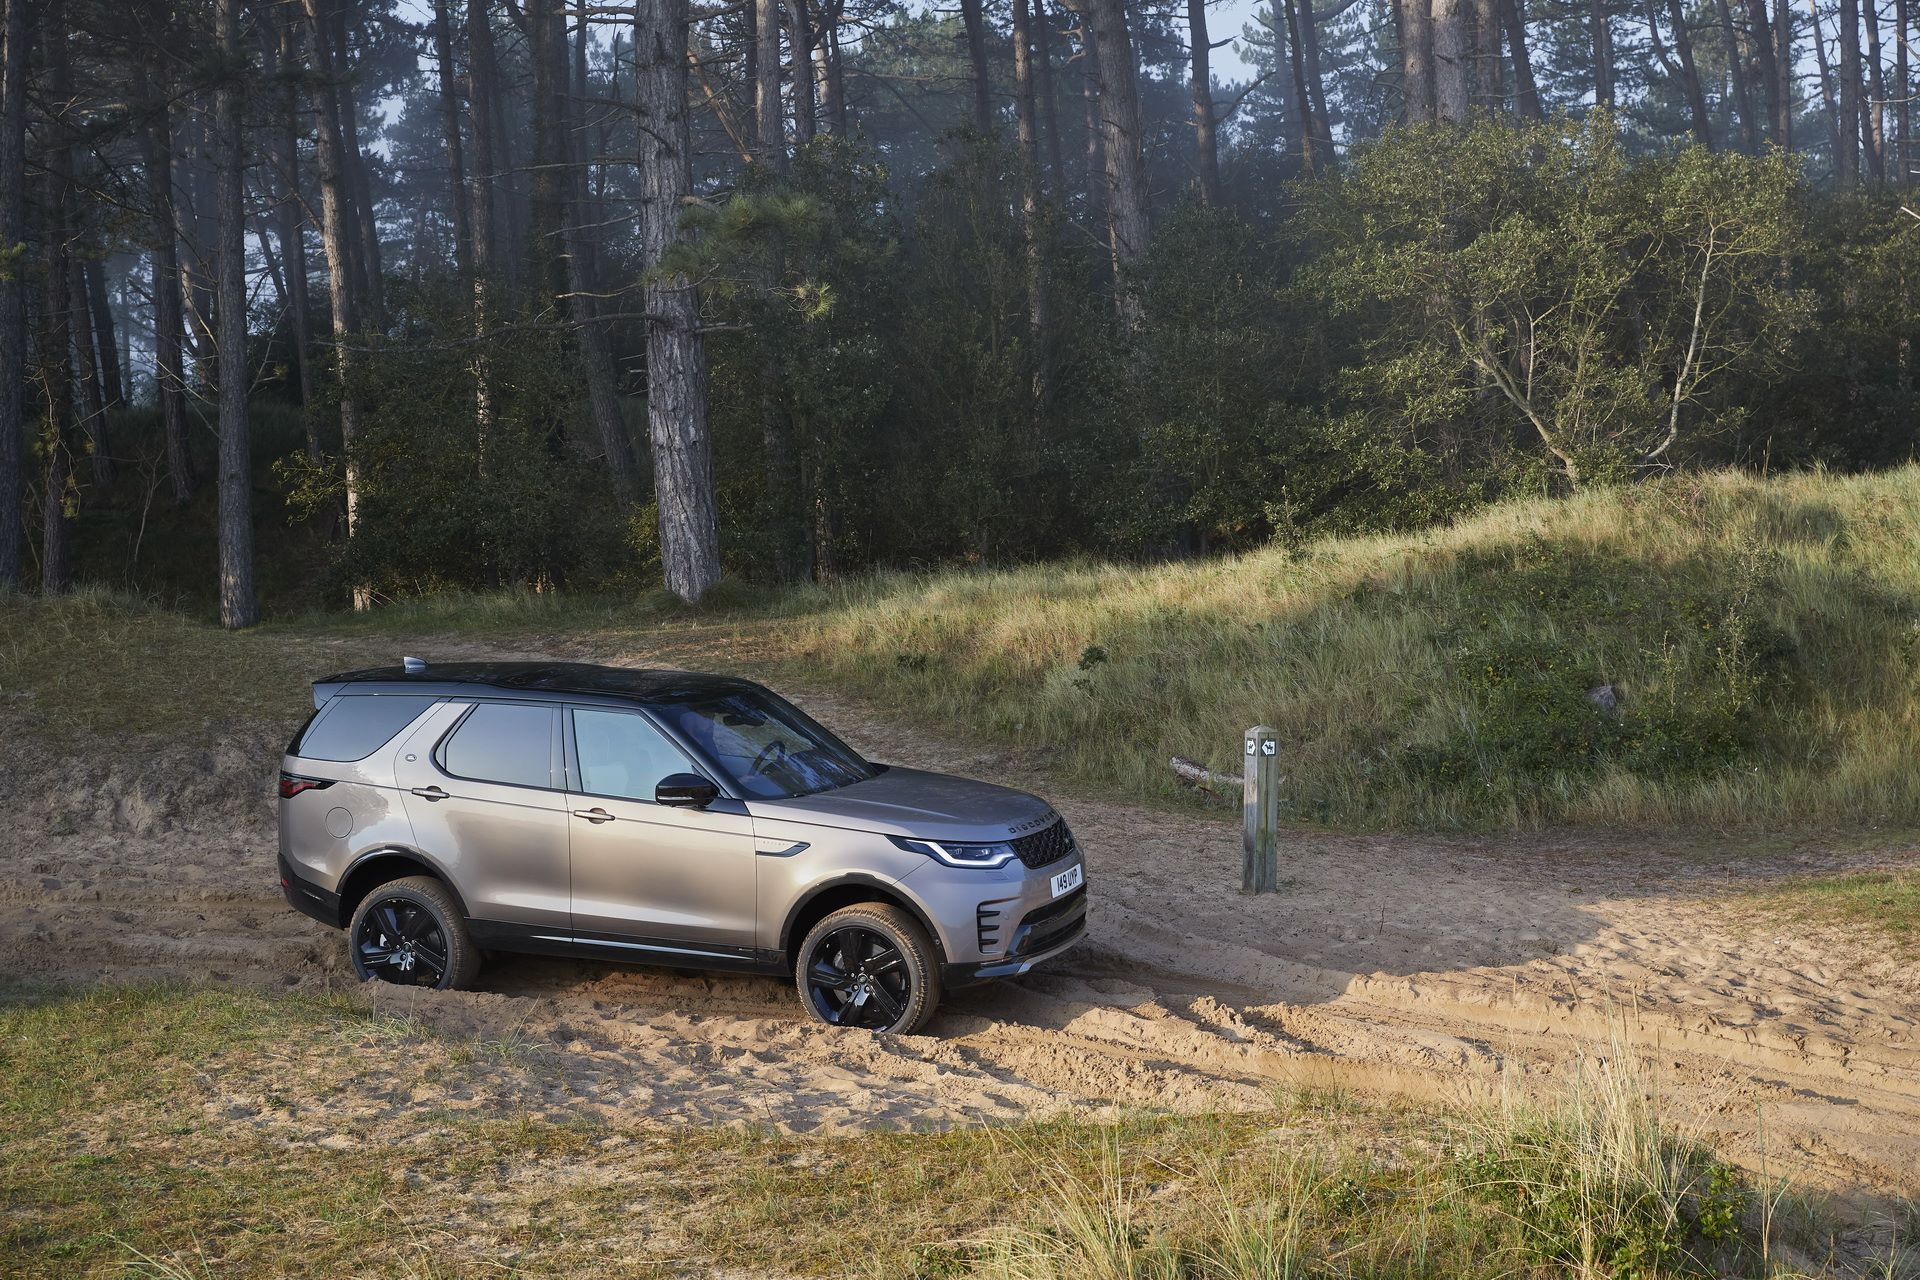 2021-Land-Rover-Discovery-32-1